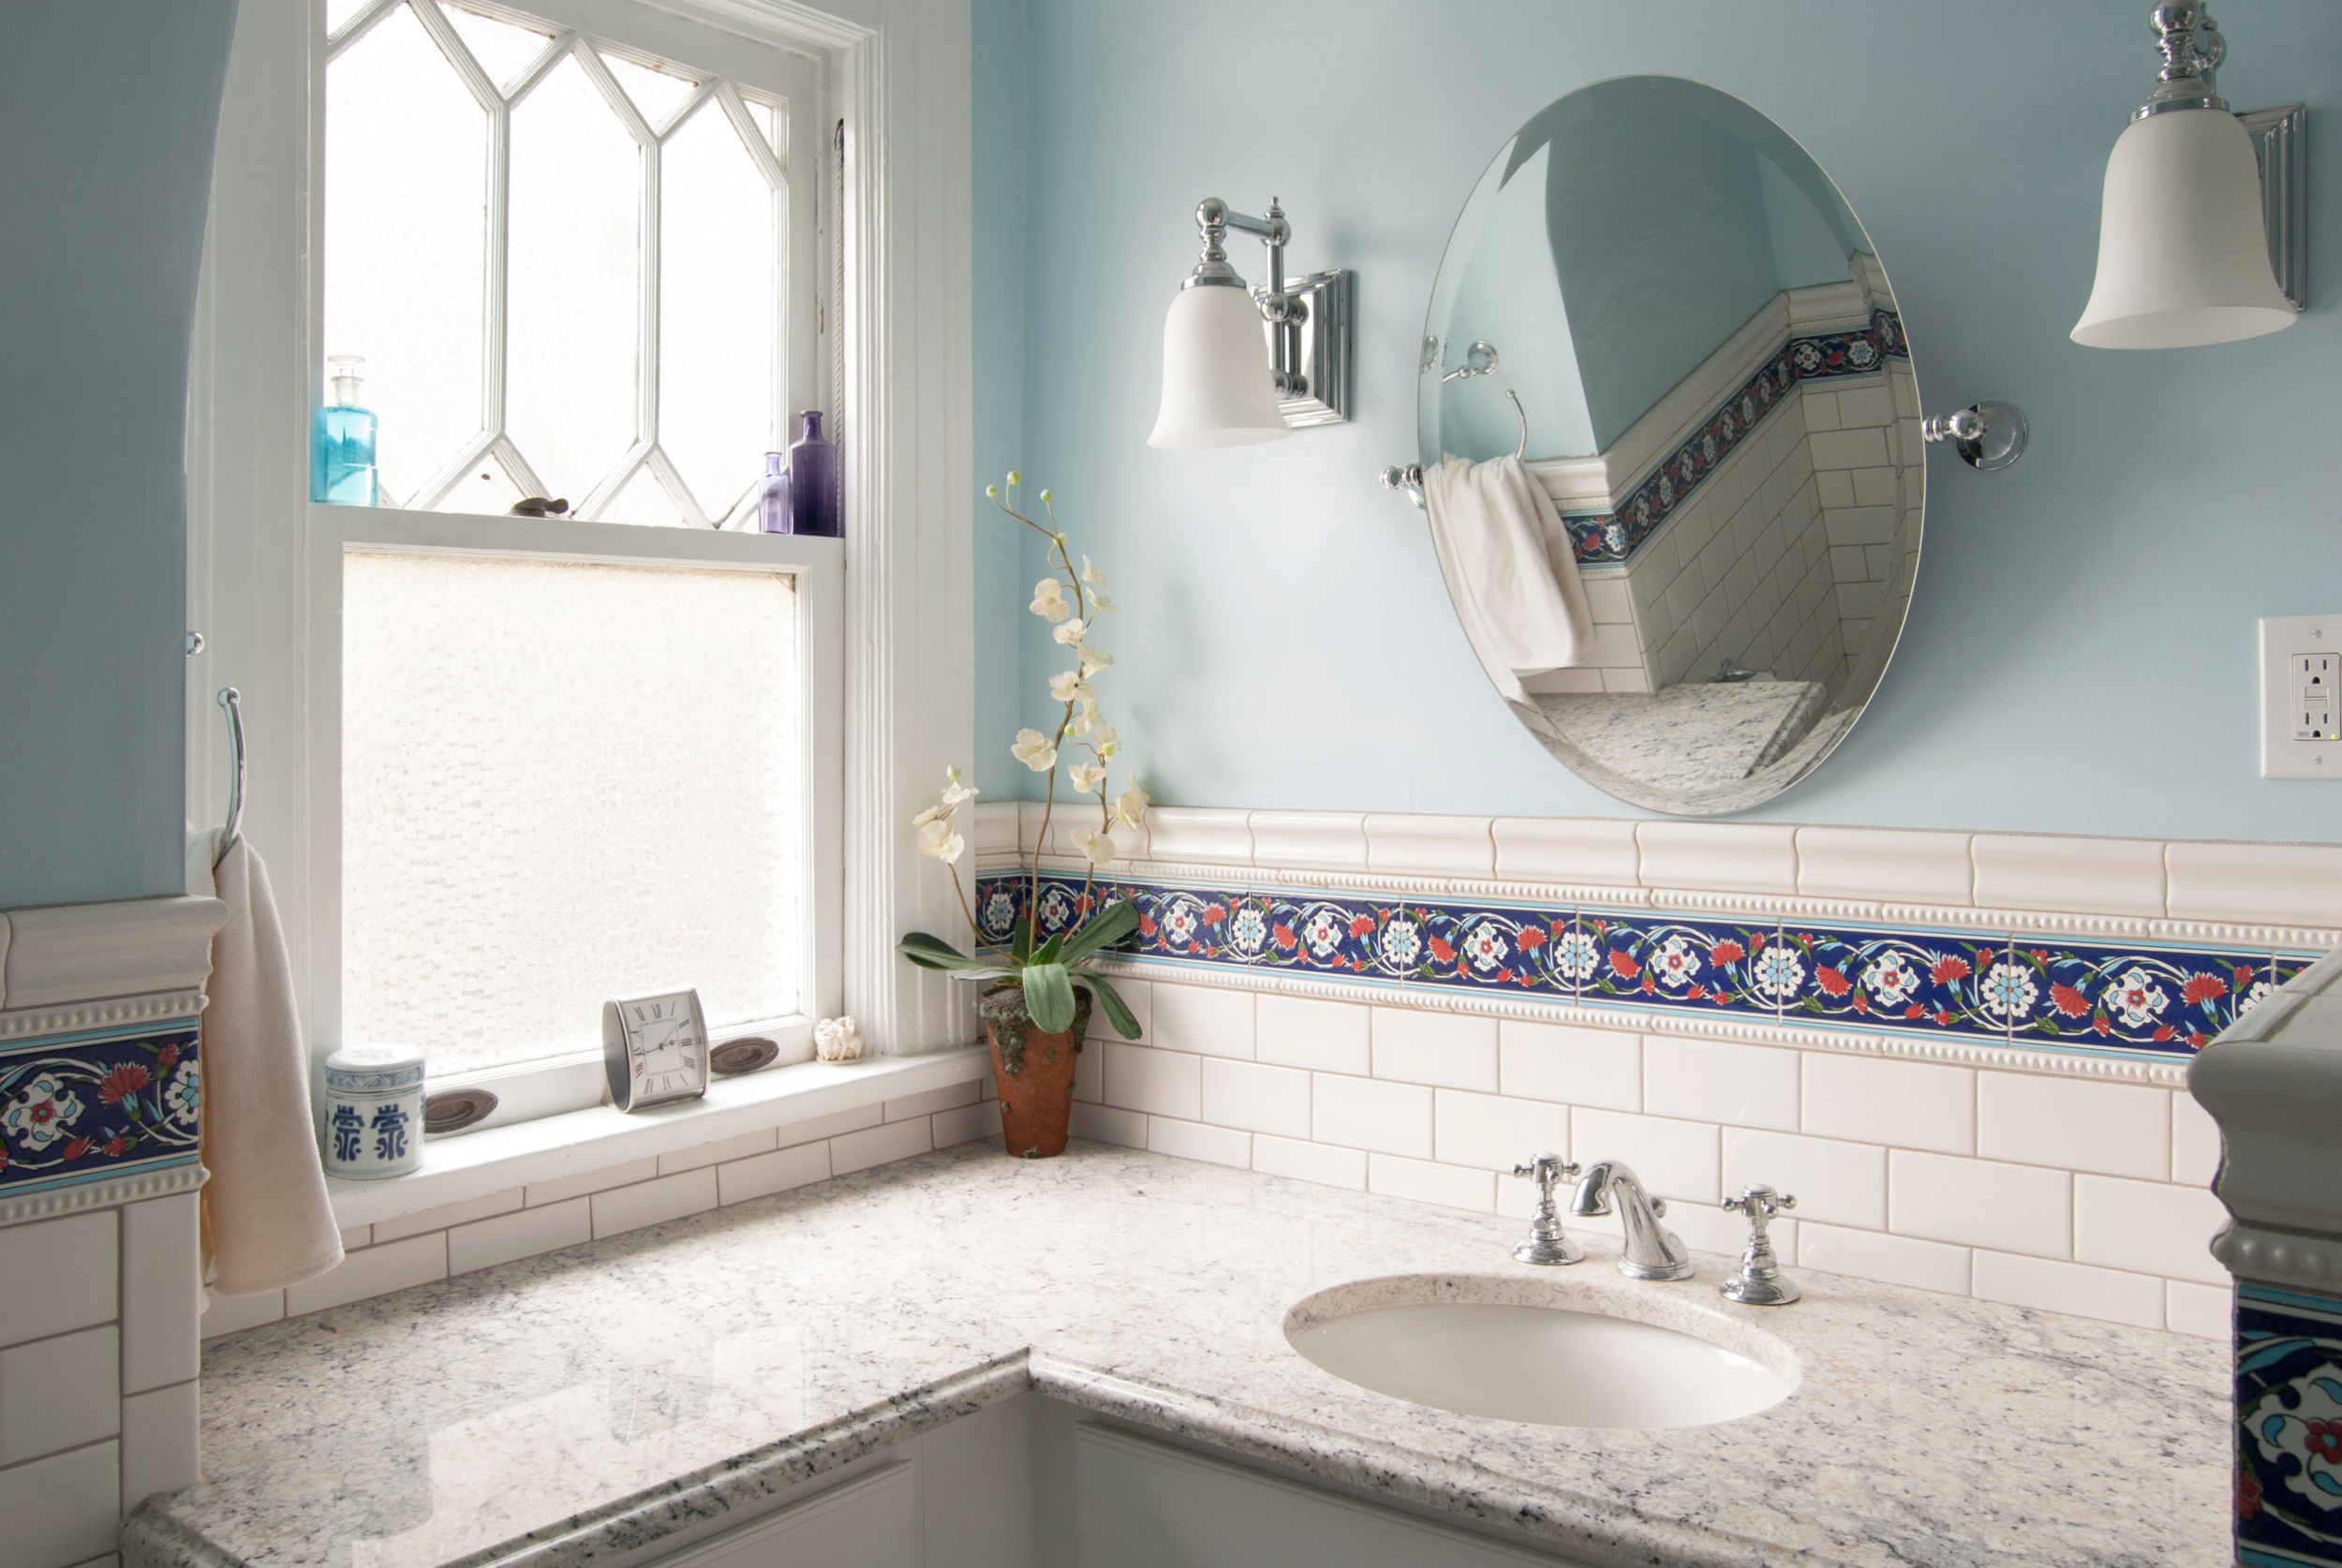 Marble sink and subway tile